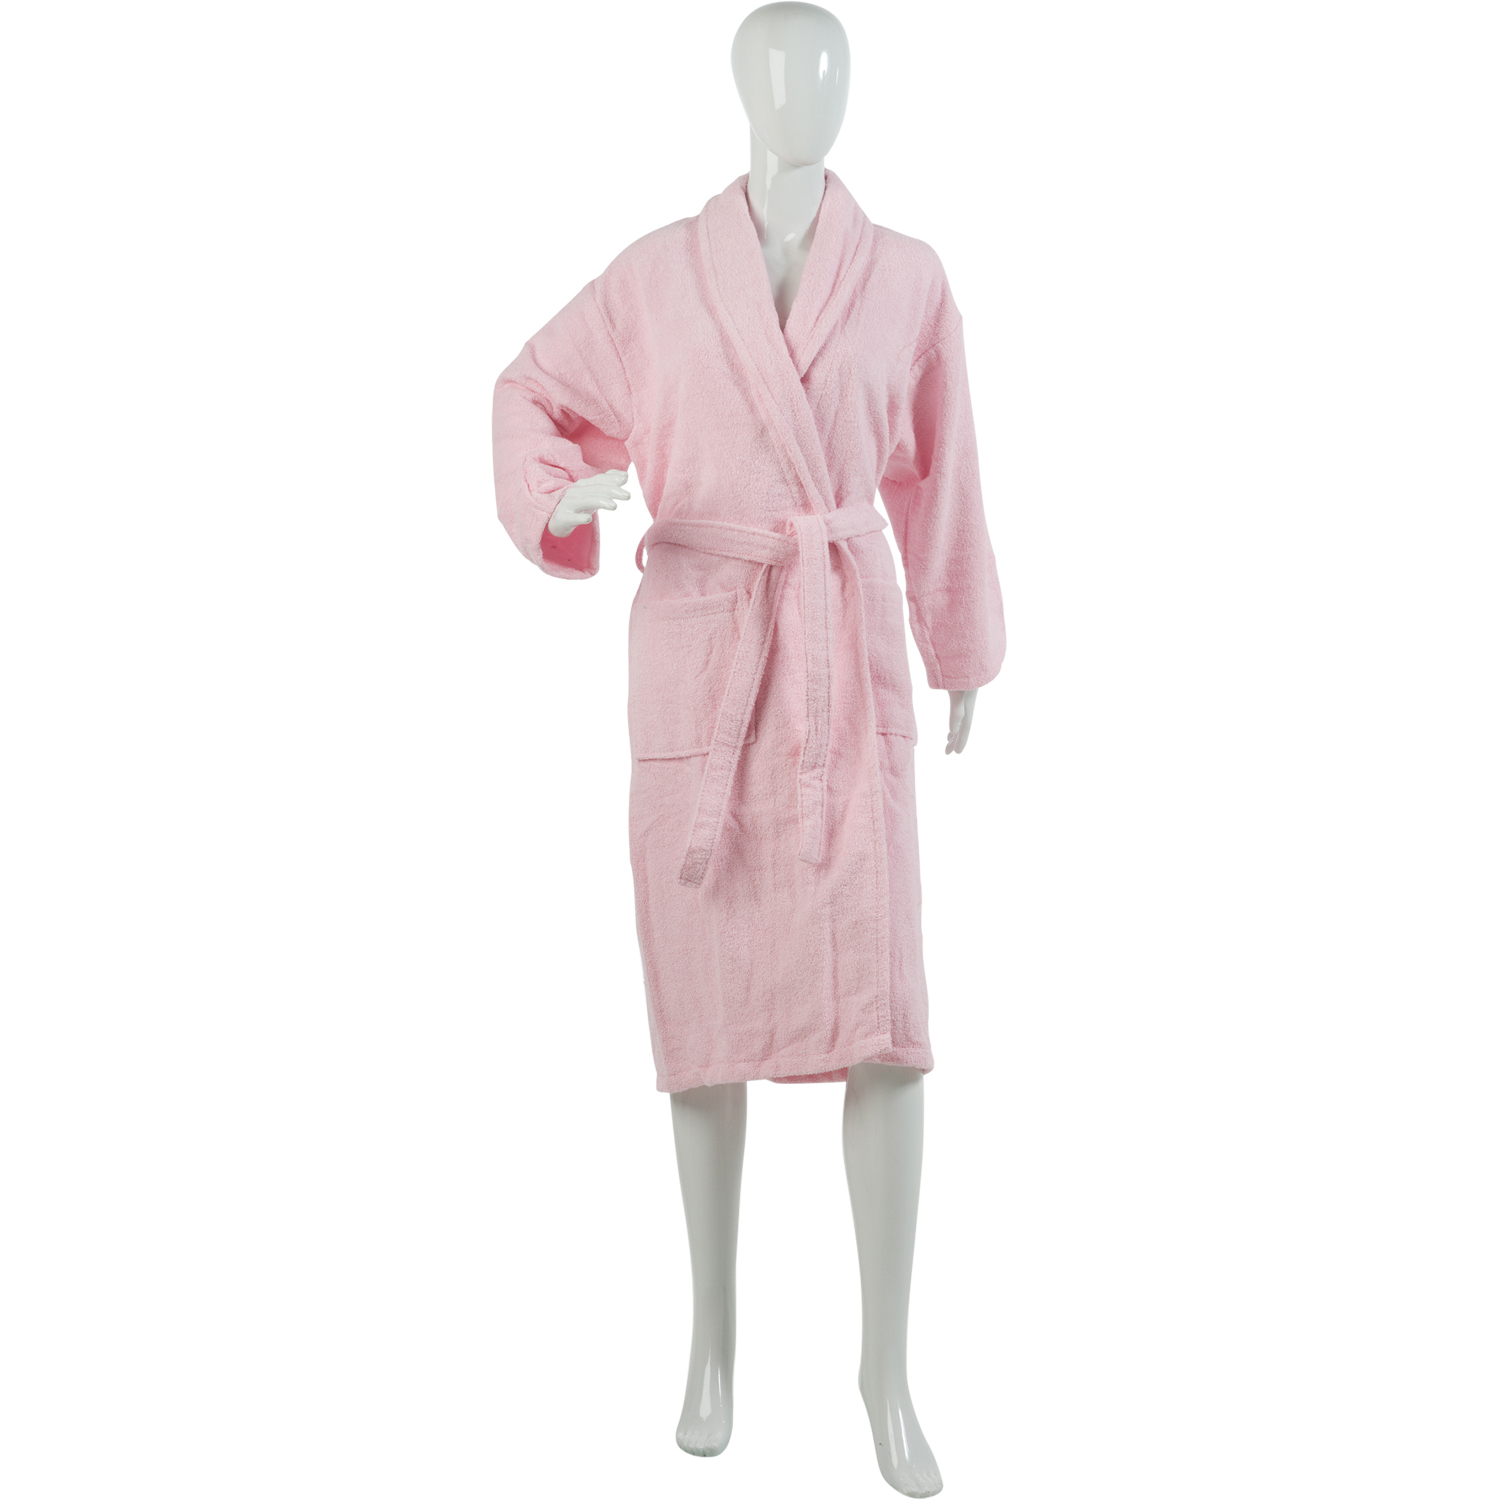 Ladies Plain Towelling Dressing Gown Womens 100% Cotton Wrap Around Bath  Robe 6275c9415